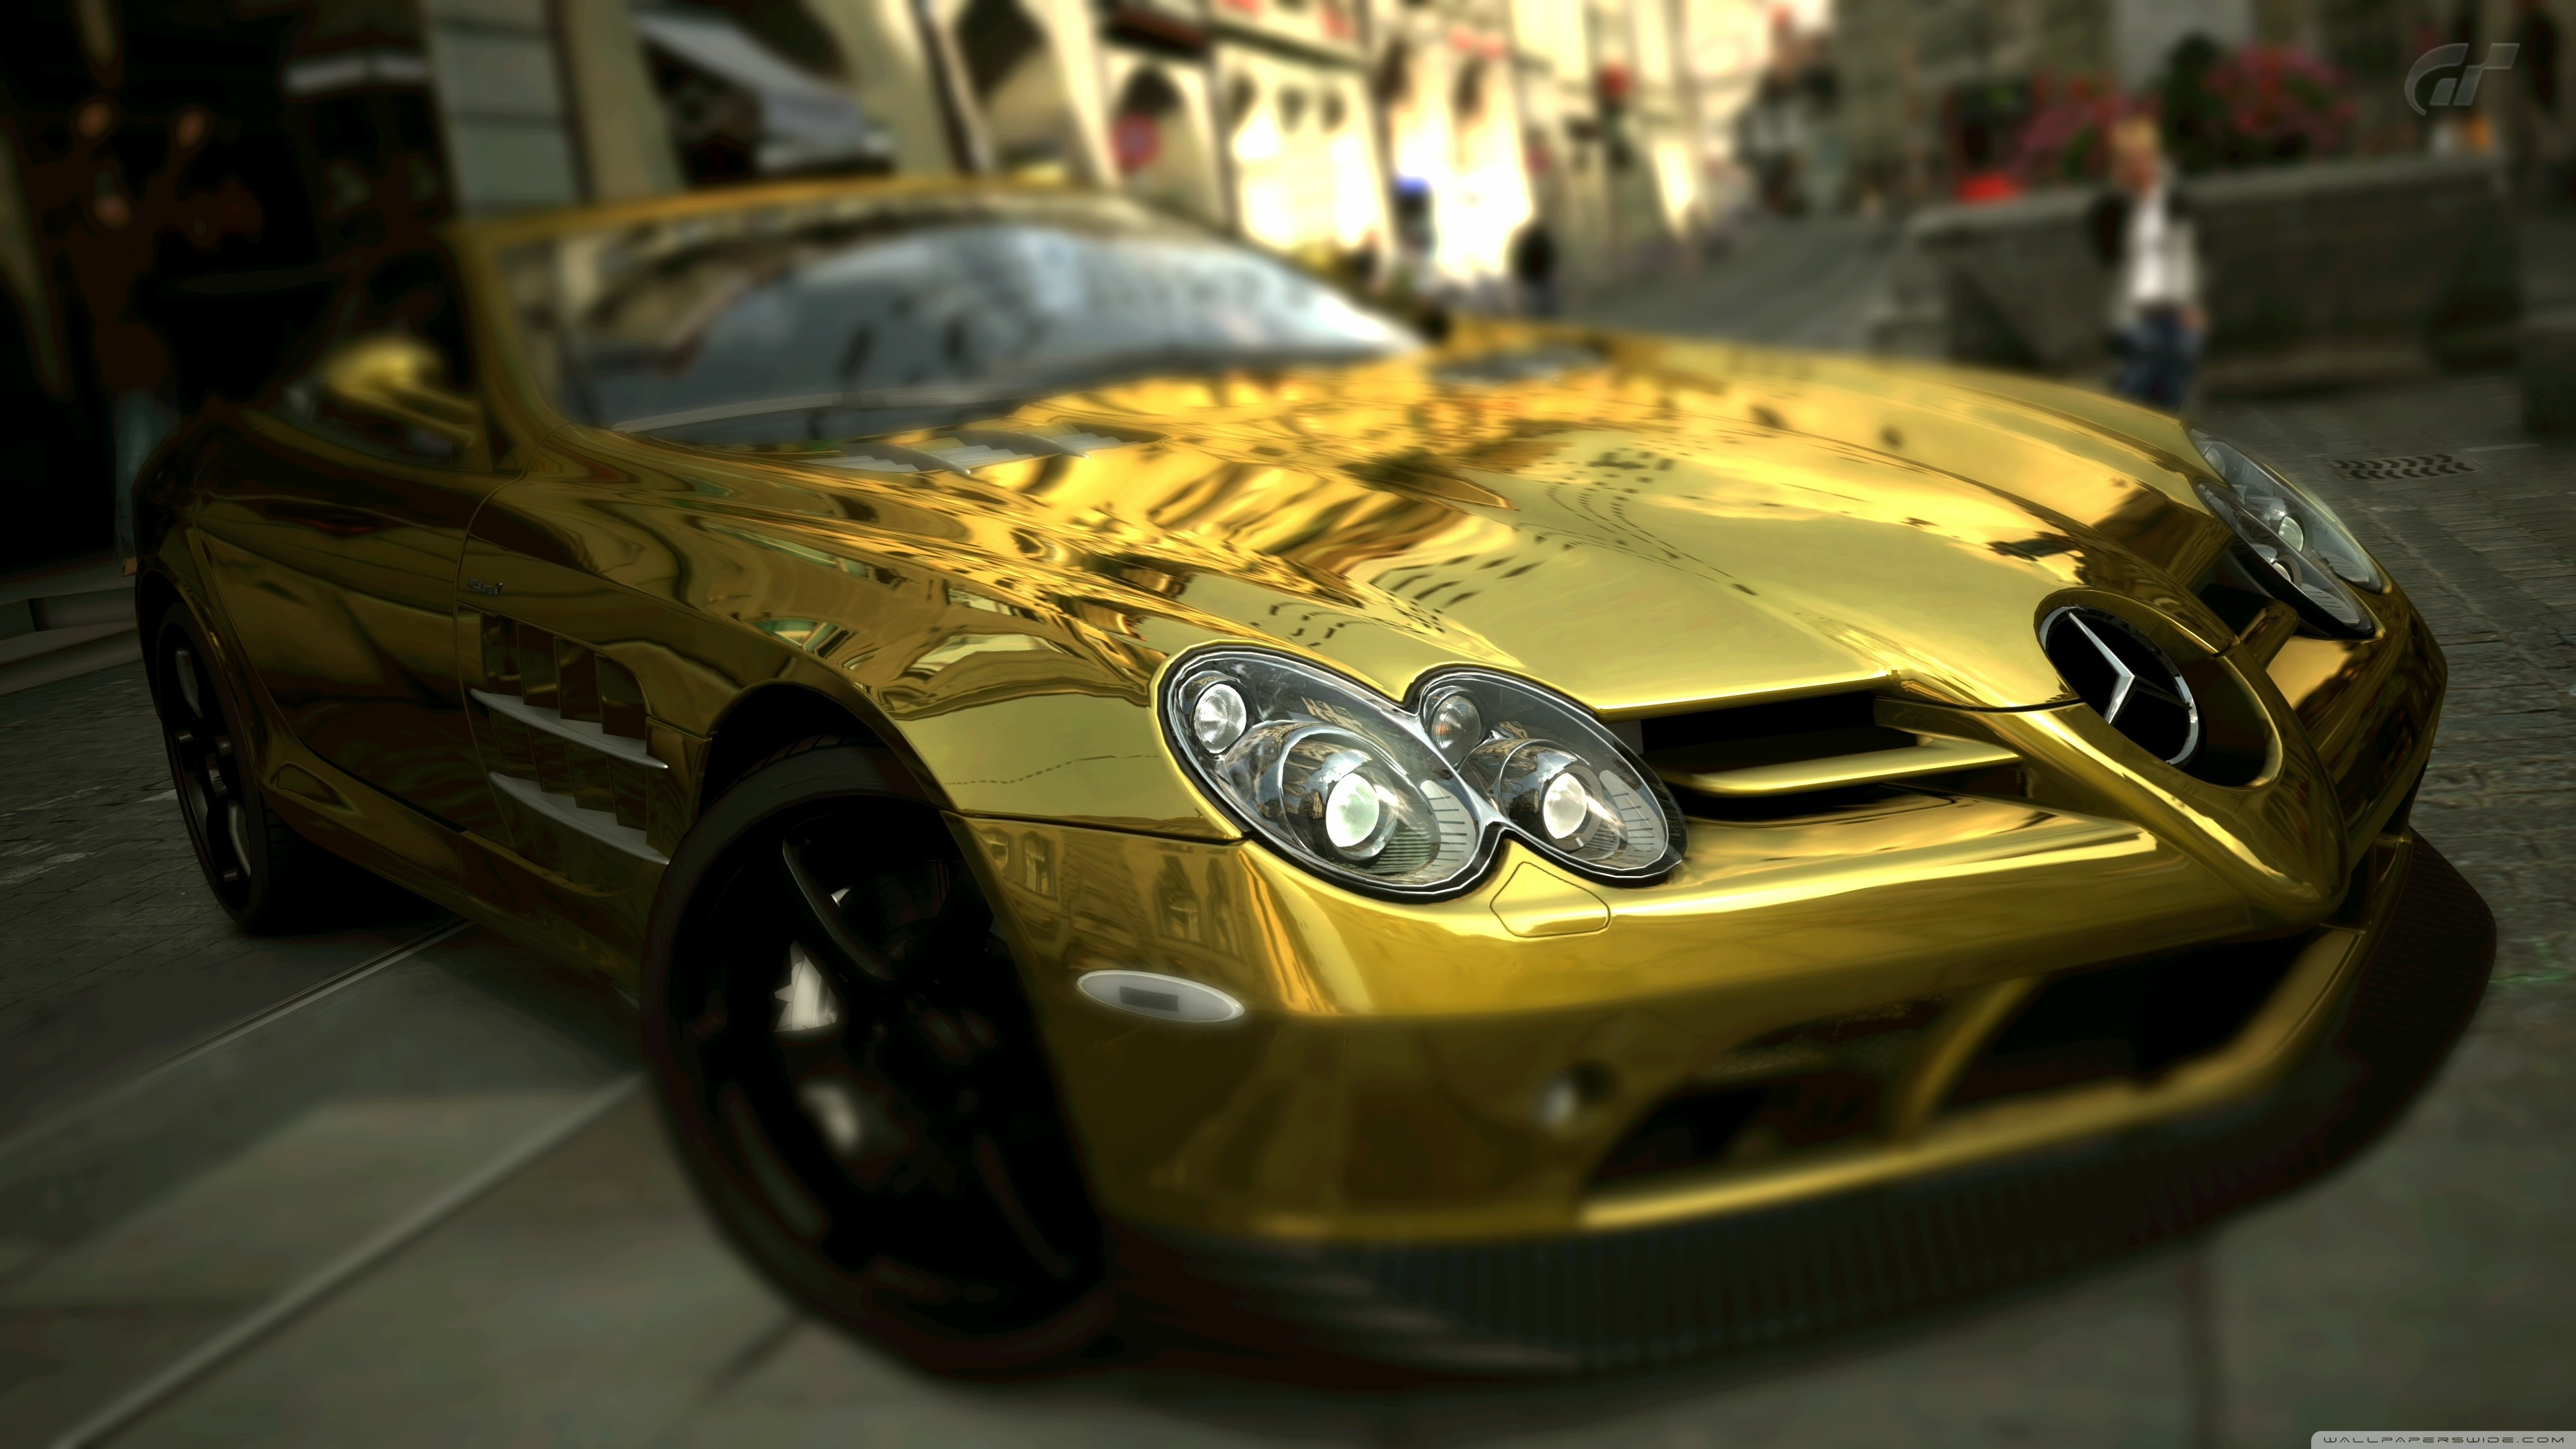 Gold Car Wallpapers: Backgrounds - Wallpaper Abyss